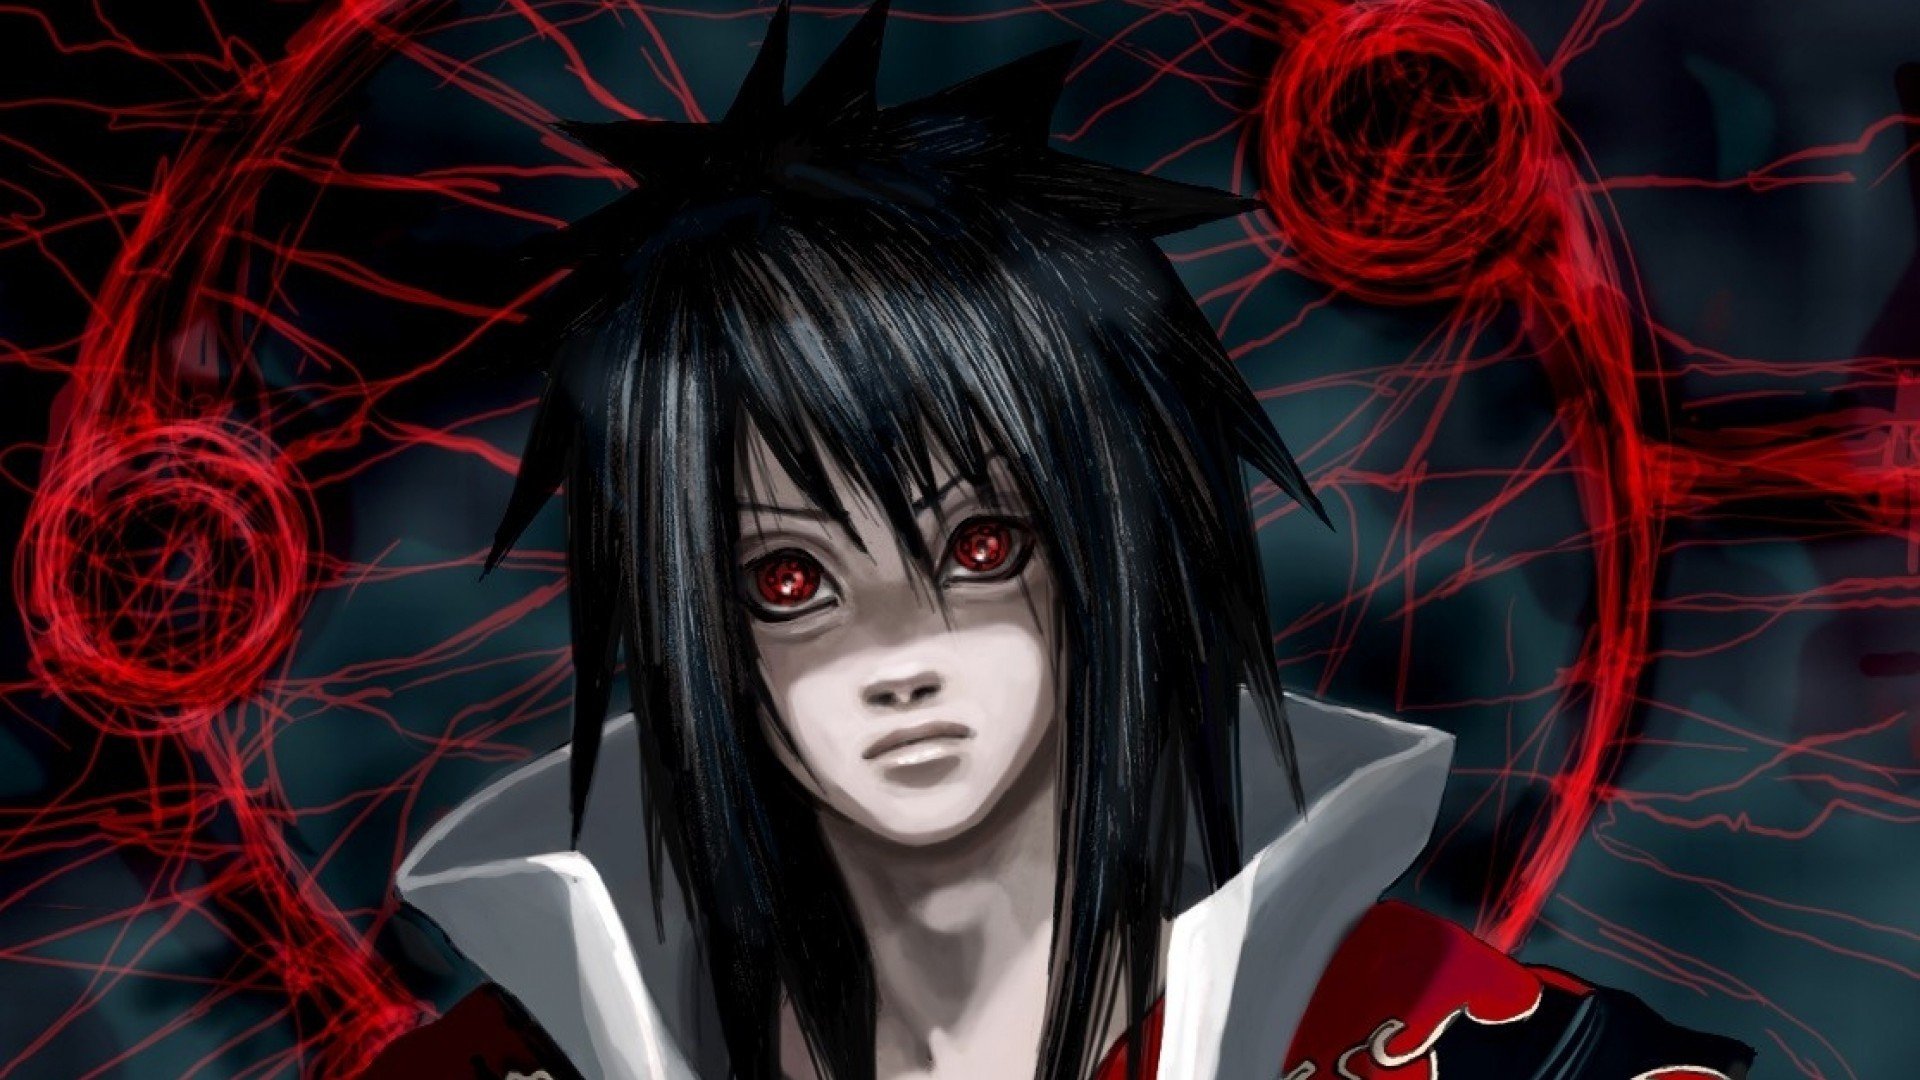 Res: 1920x1080, Free Mangekyou Sharingan Backgrounds Download wallpaperwiki